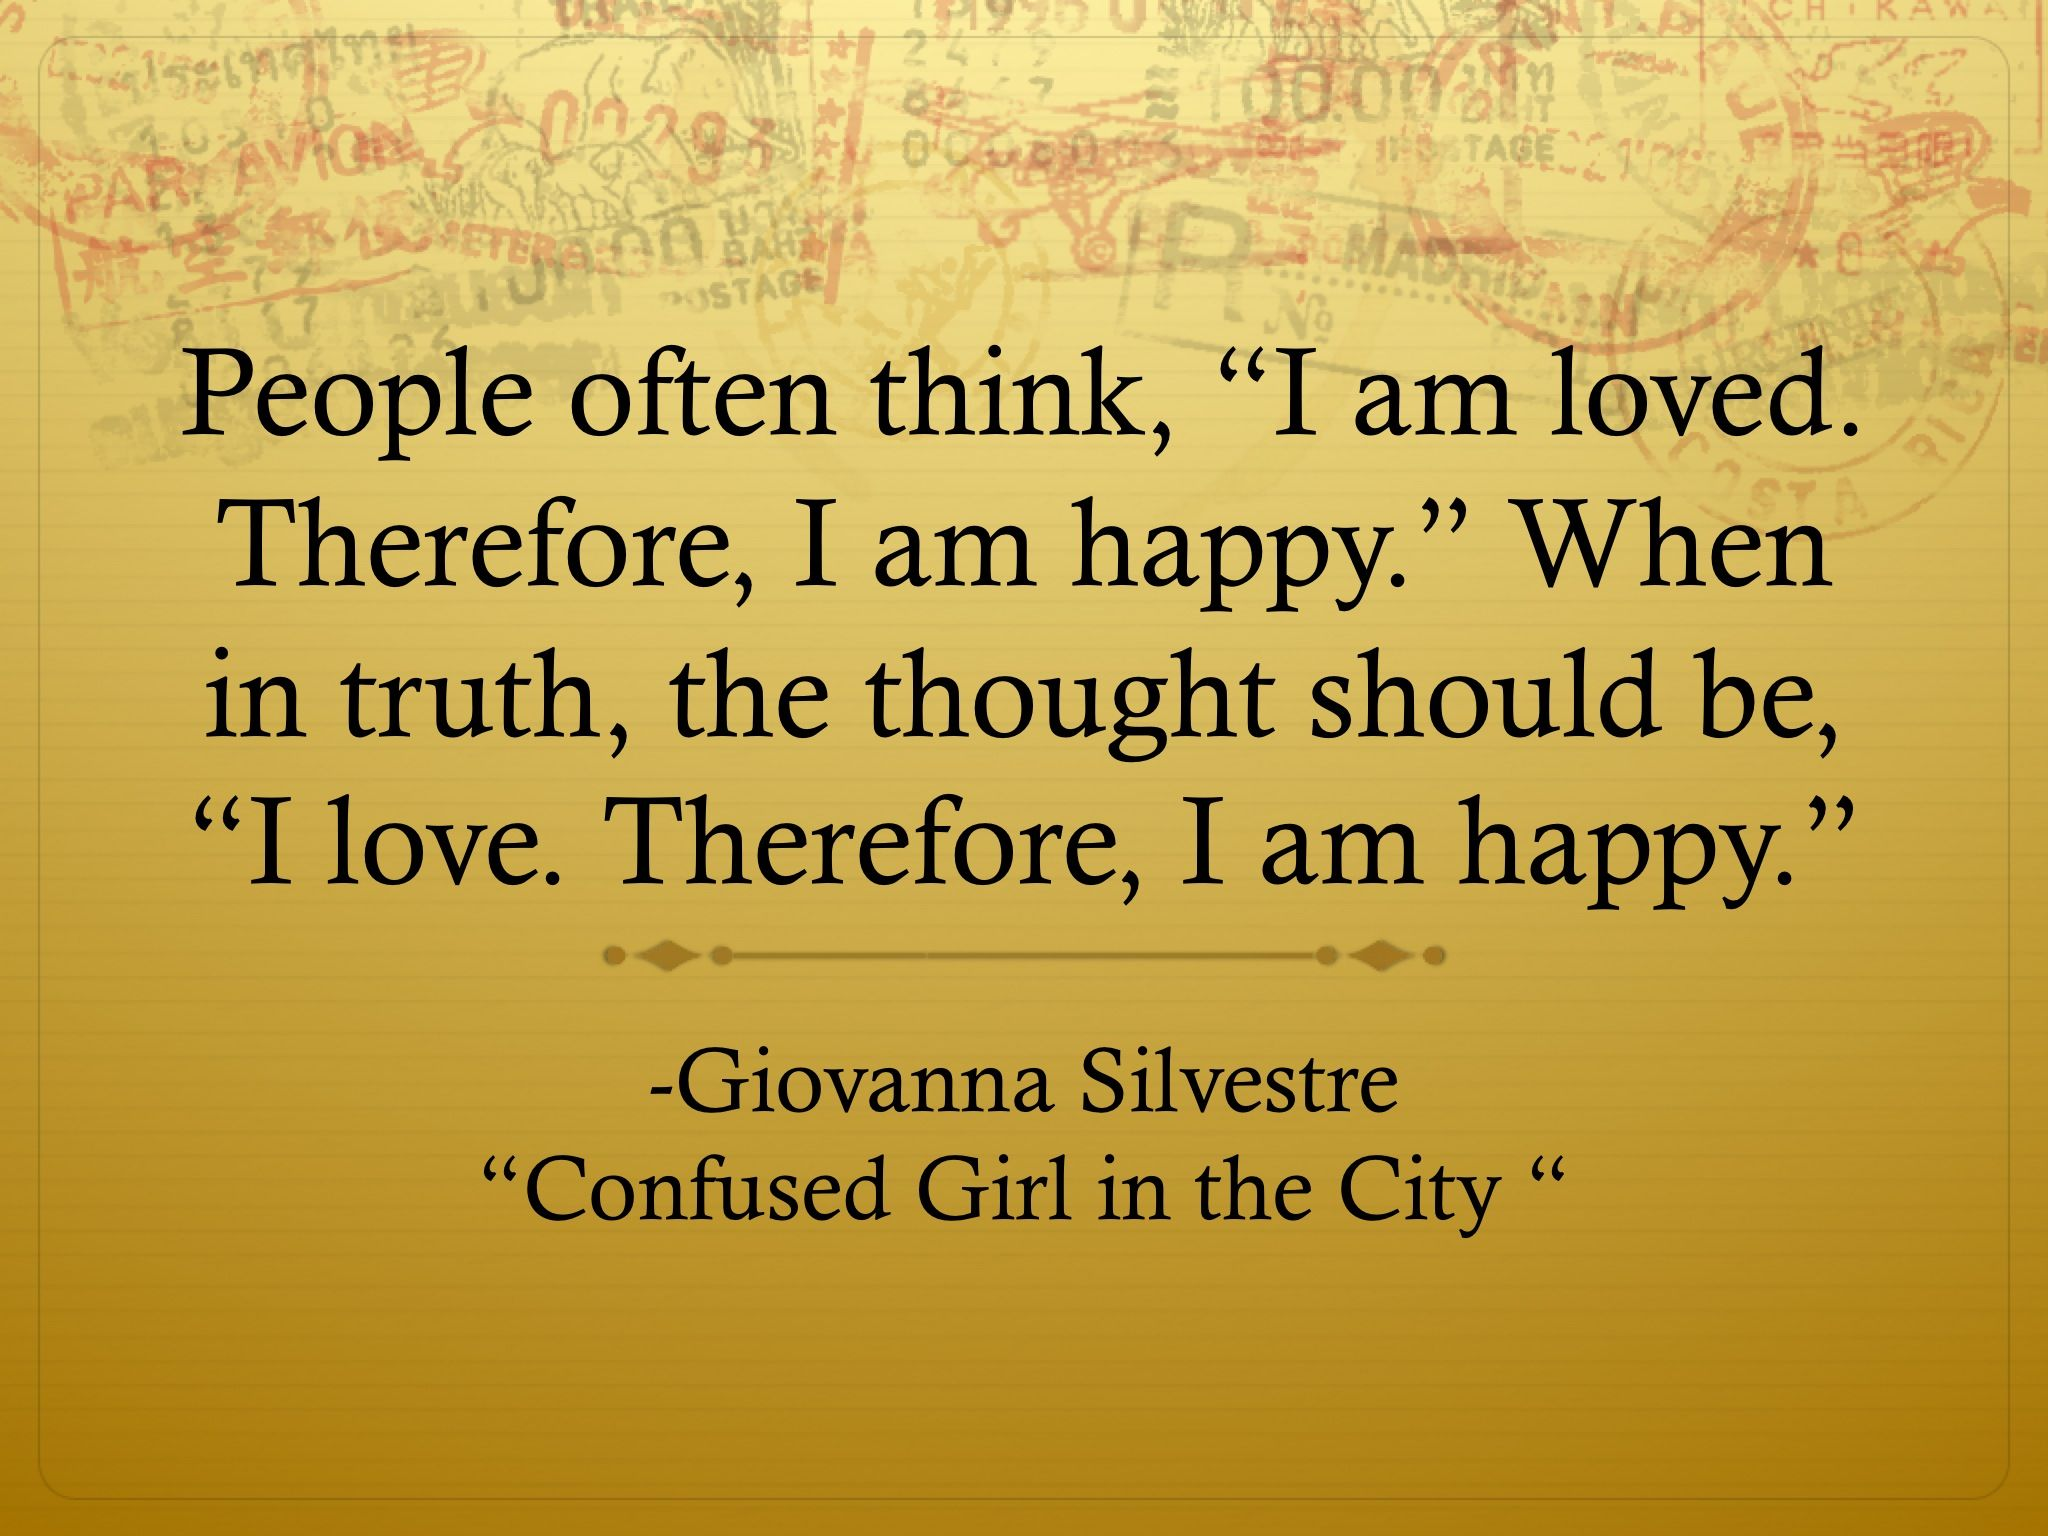 Confused Girl in the City Quote about Love!  #quote #lovequote #quoteoftheday